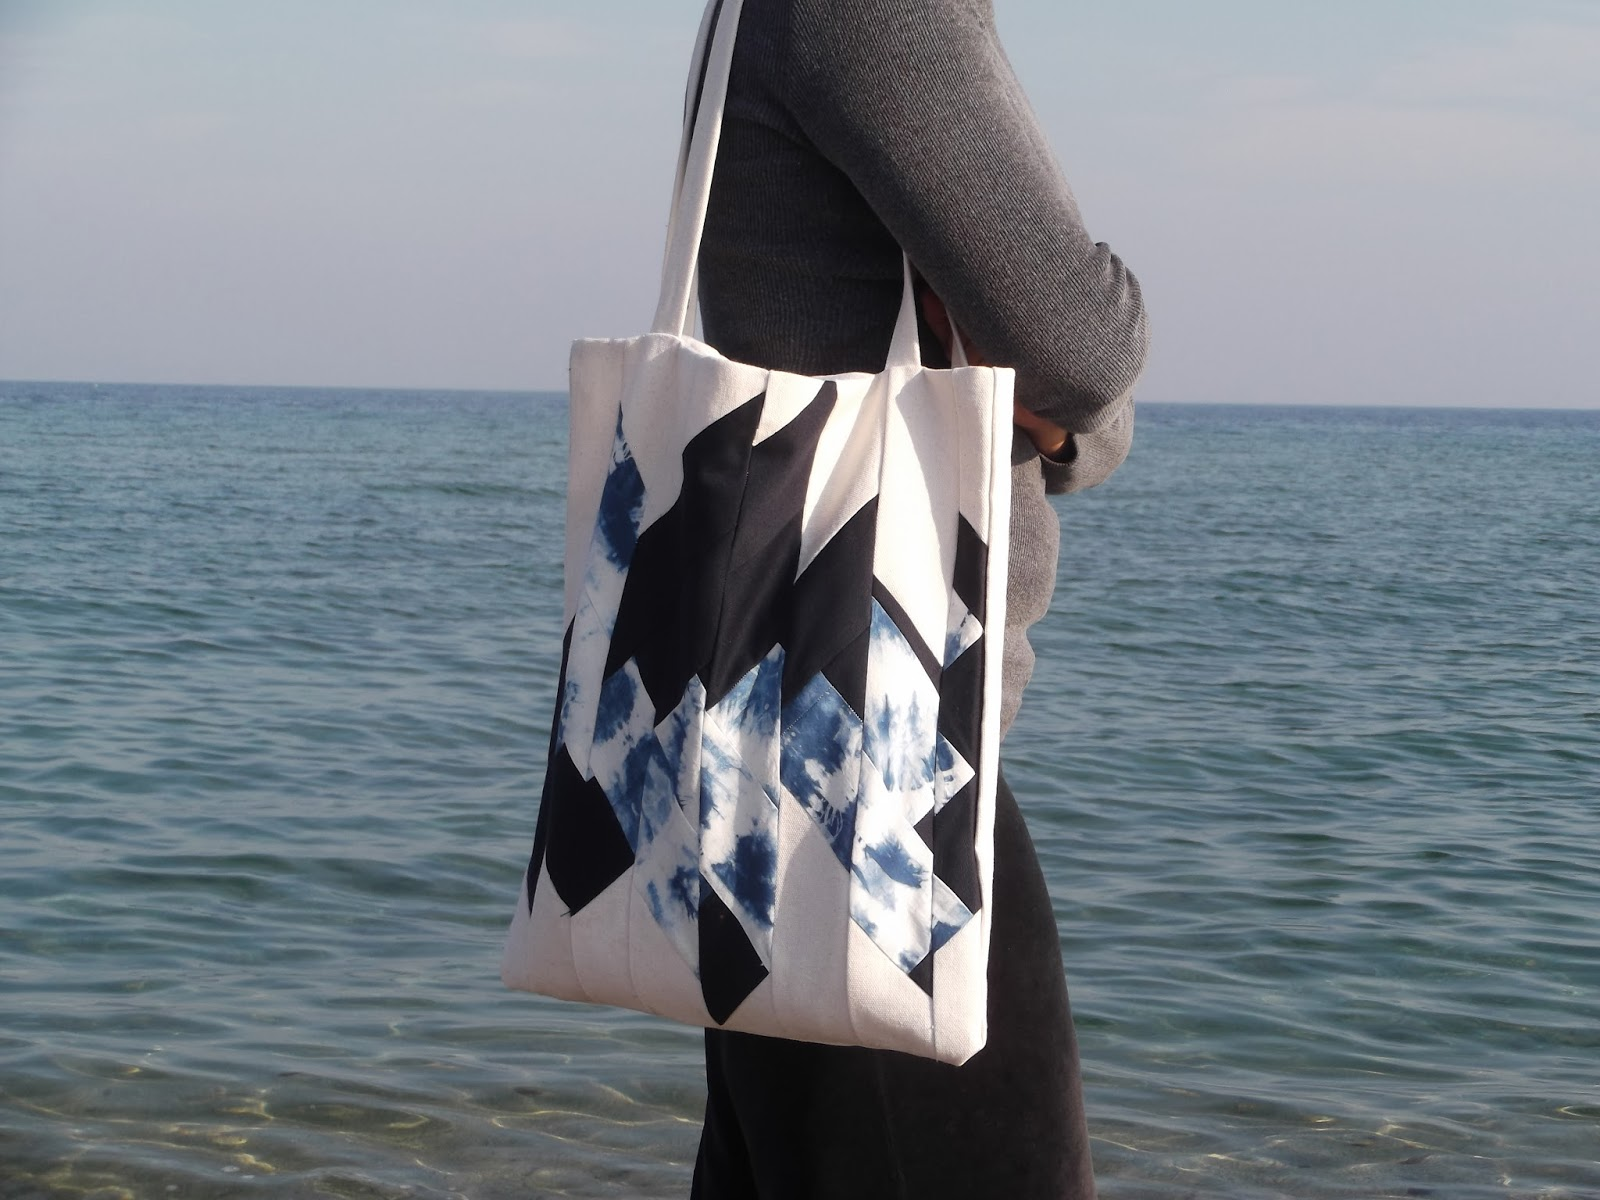 Tote bag, shibori tote bag, shibori bag, shibori, modern patchwork, contemporary patchwork